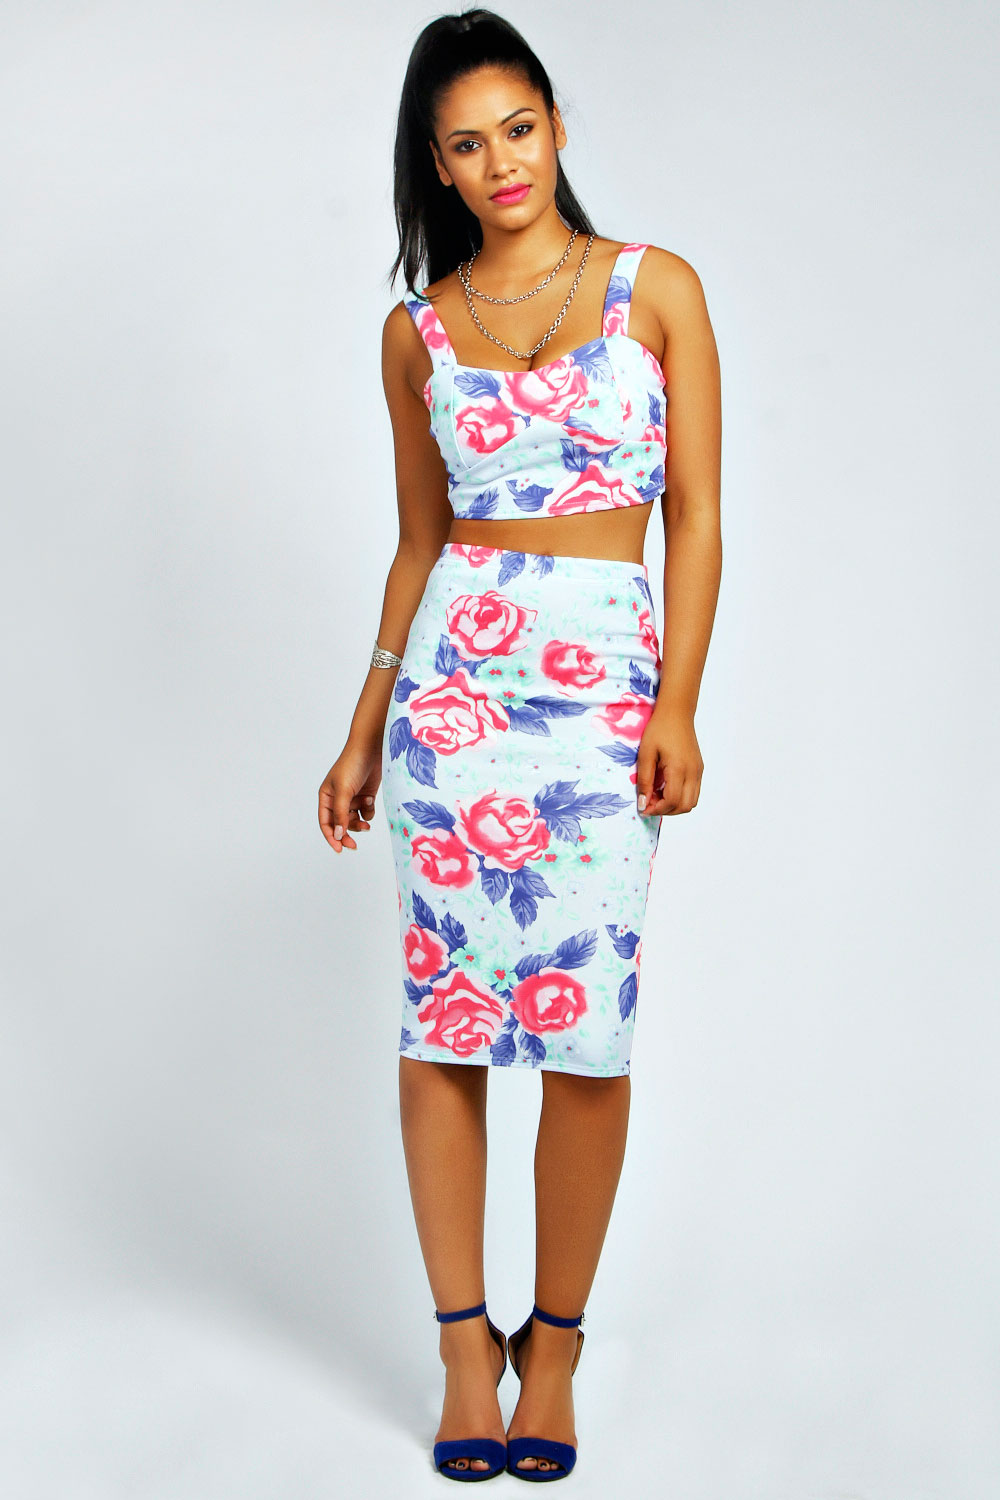 boohoo womens rona pastel floral bralet top and midi skirt